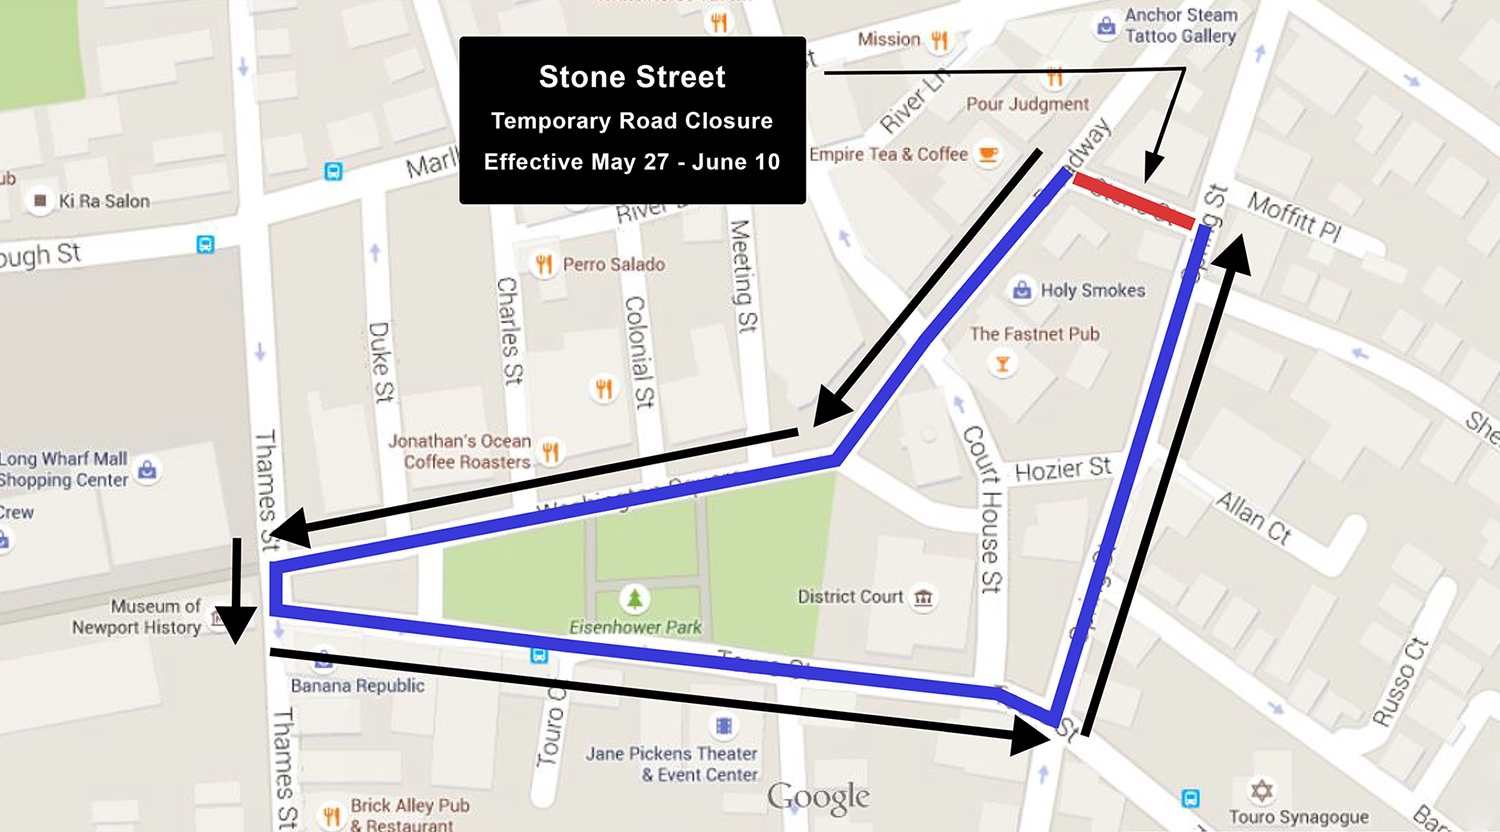 http://www.dot.ri.gov/documents/travel/detourmaps/Stone%20Street%20Closure.jpg